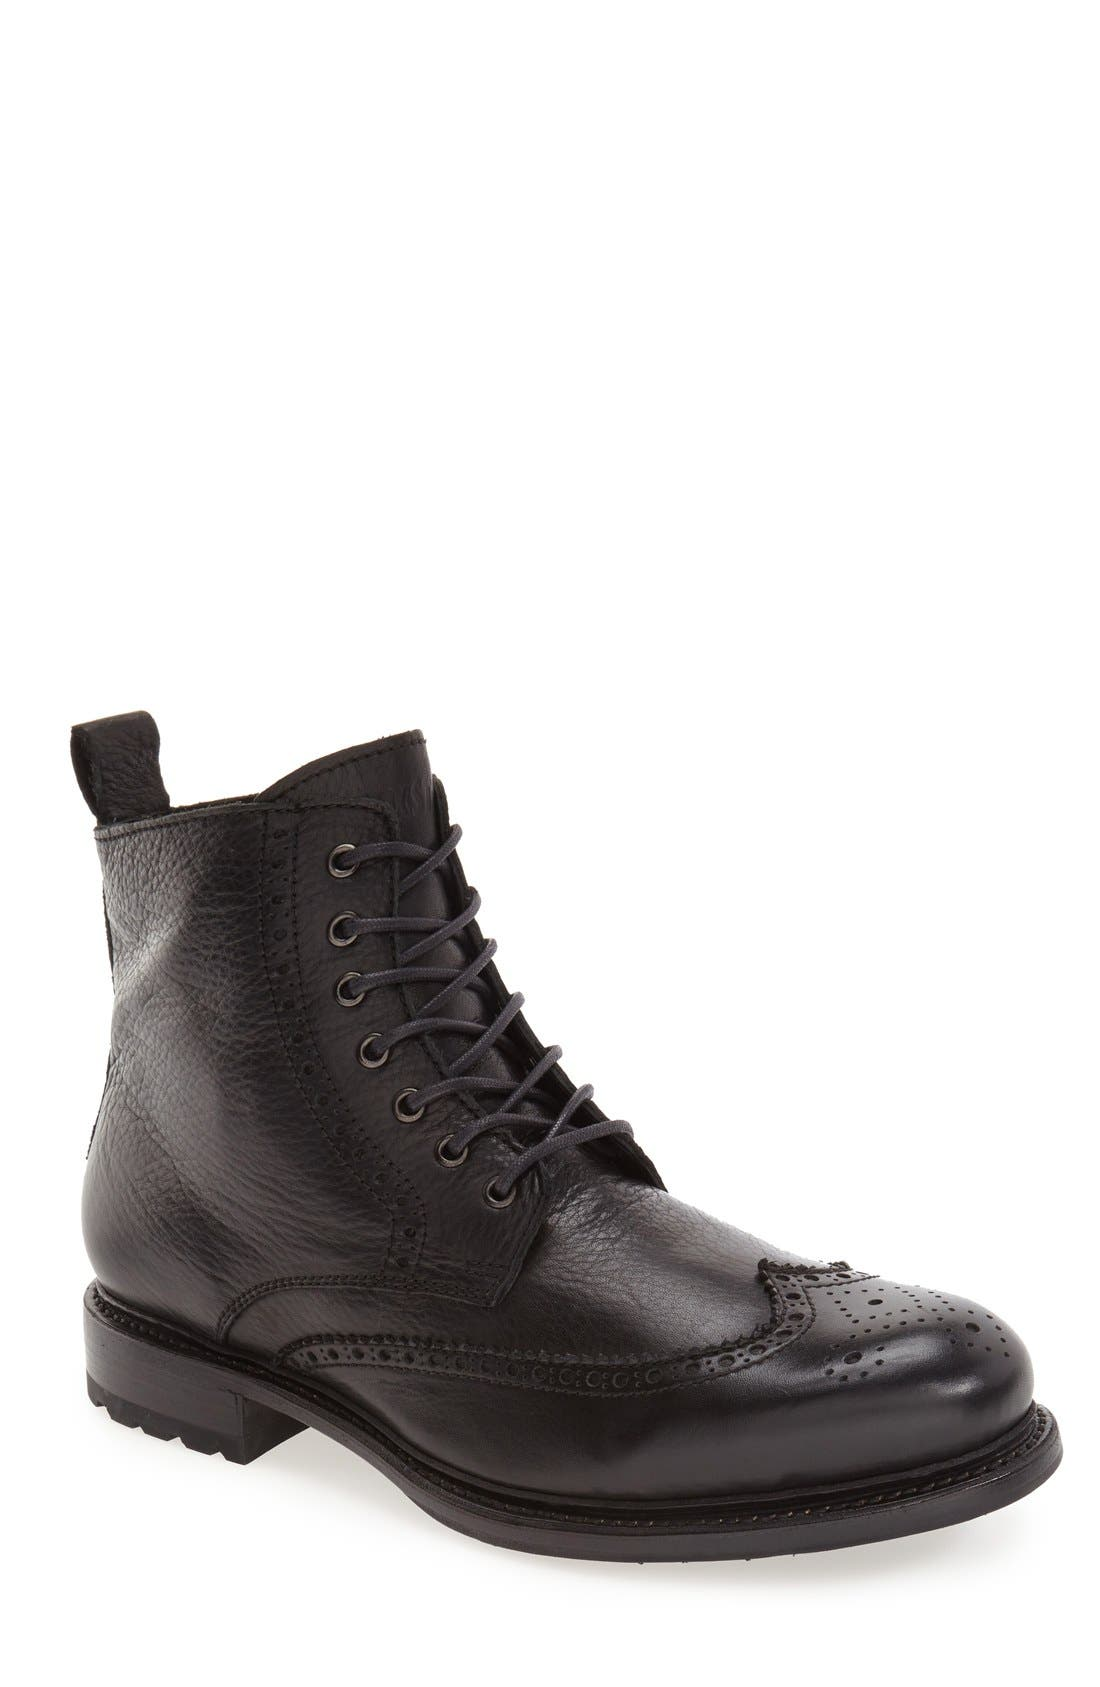 'KM24' Wingtip Boot,                         Main,                         color, Black